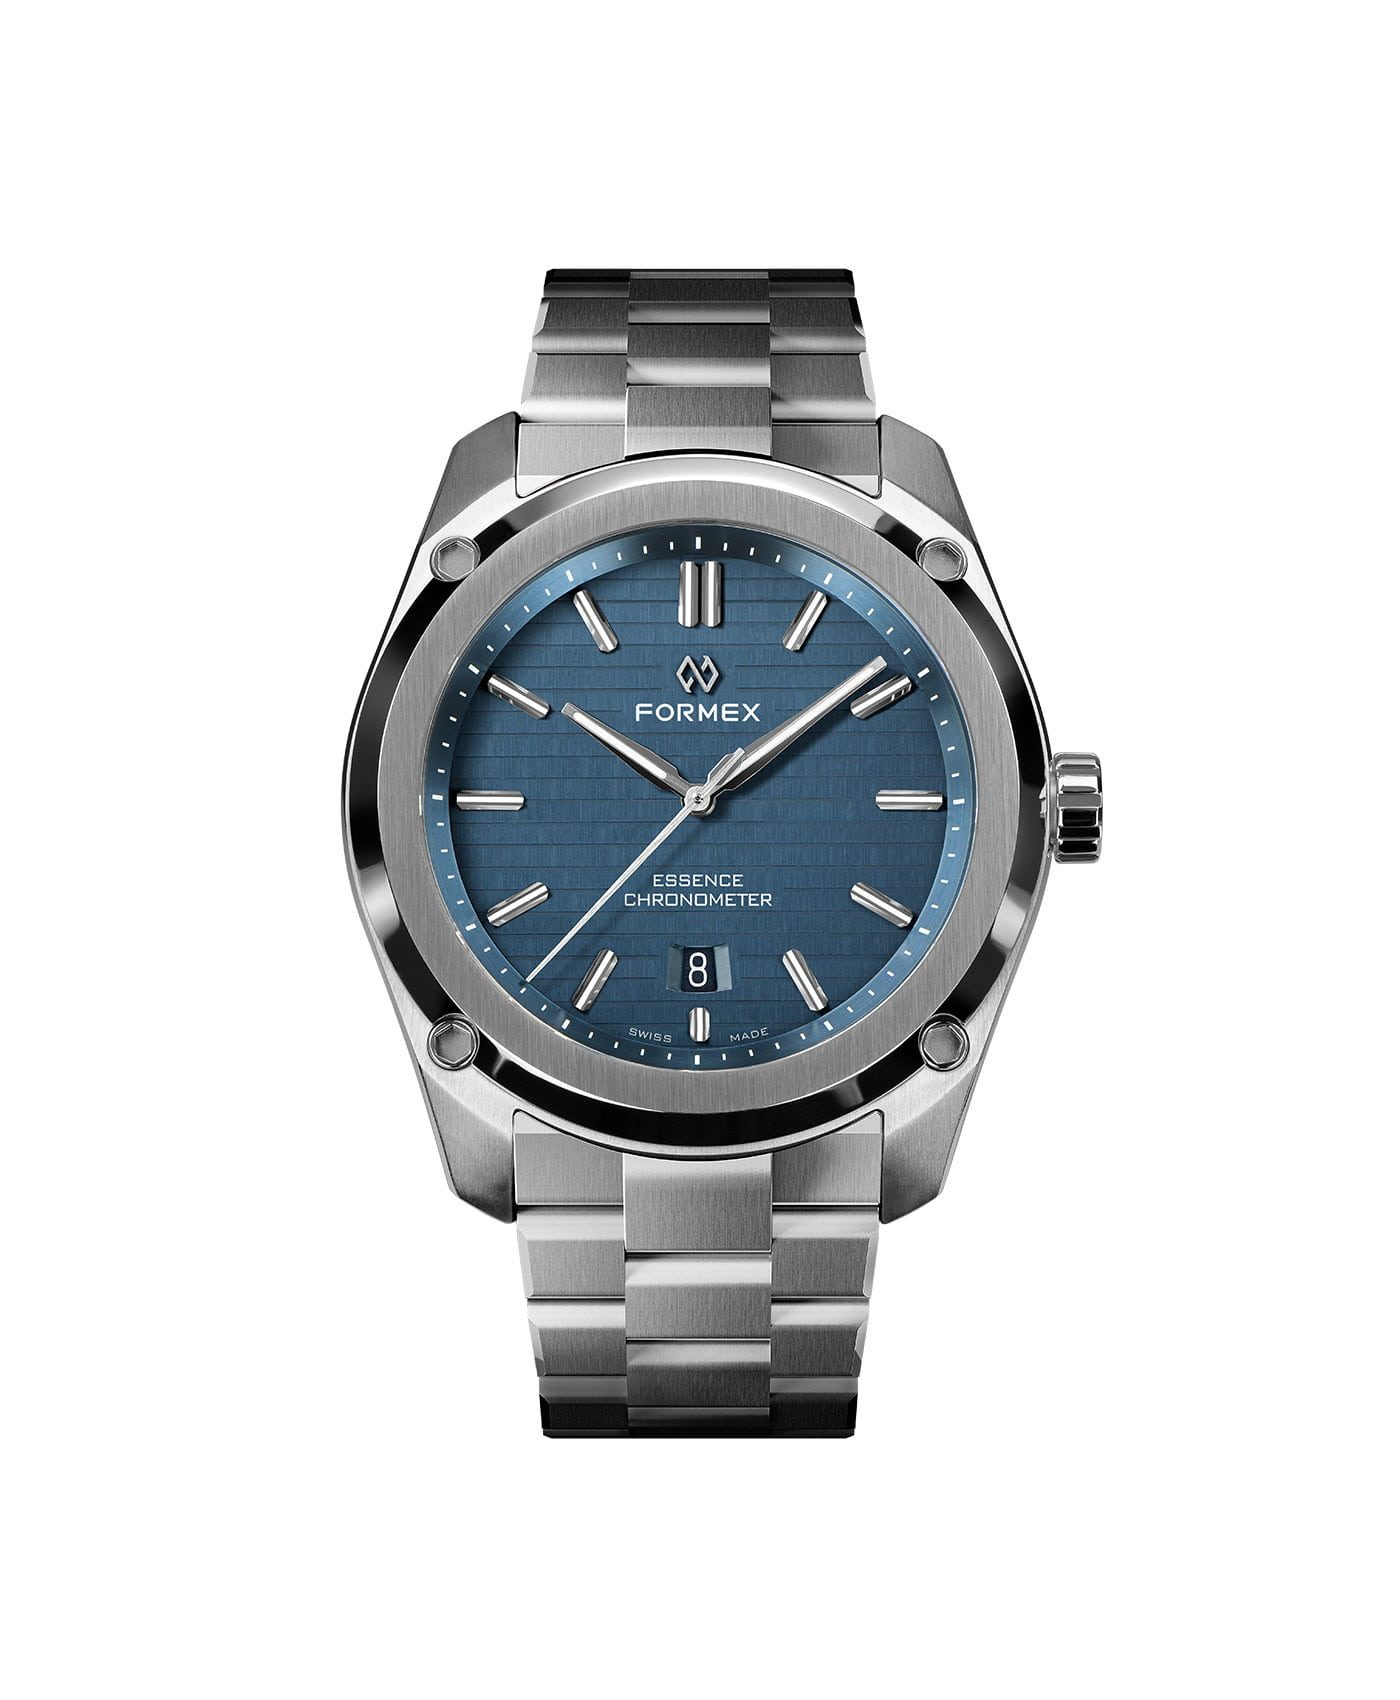 Formex - Essence FortyThree - Automatic Chronometer Blue dial